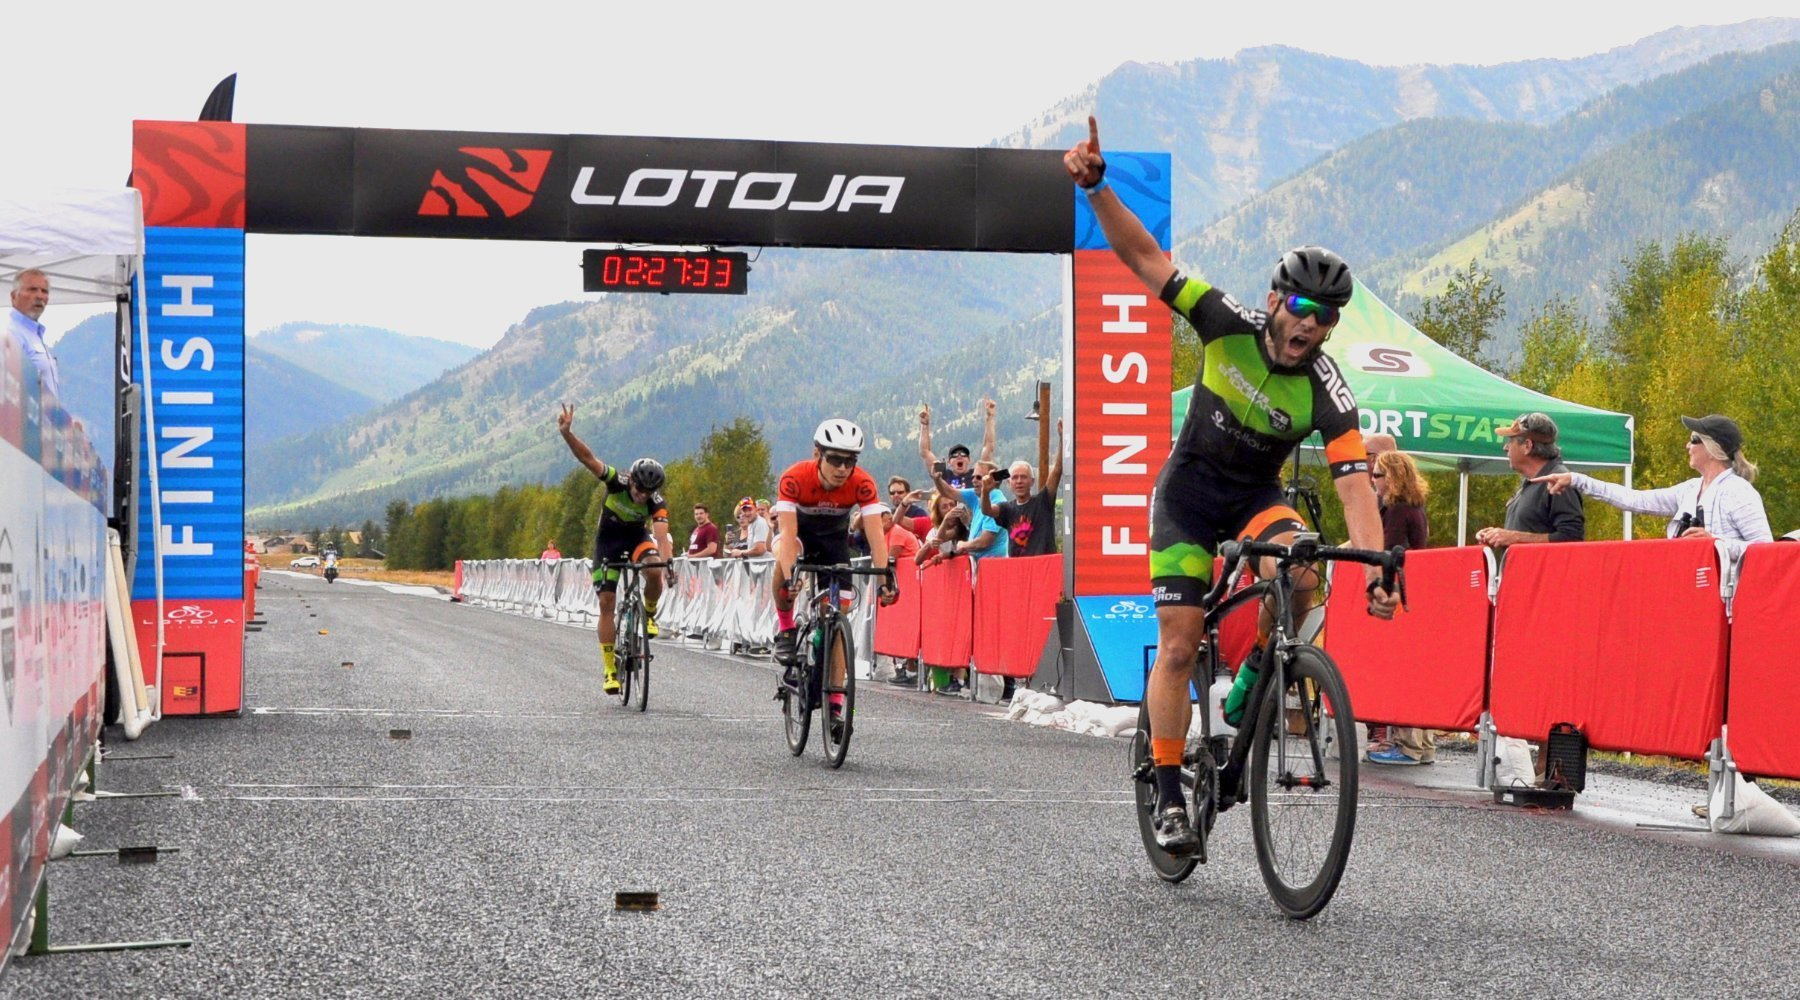 Team Endurance360® Rider Wins LOTOJA, Proves He's Racing Clean